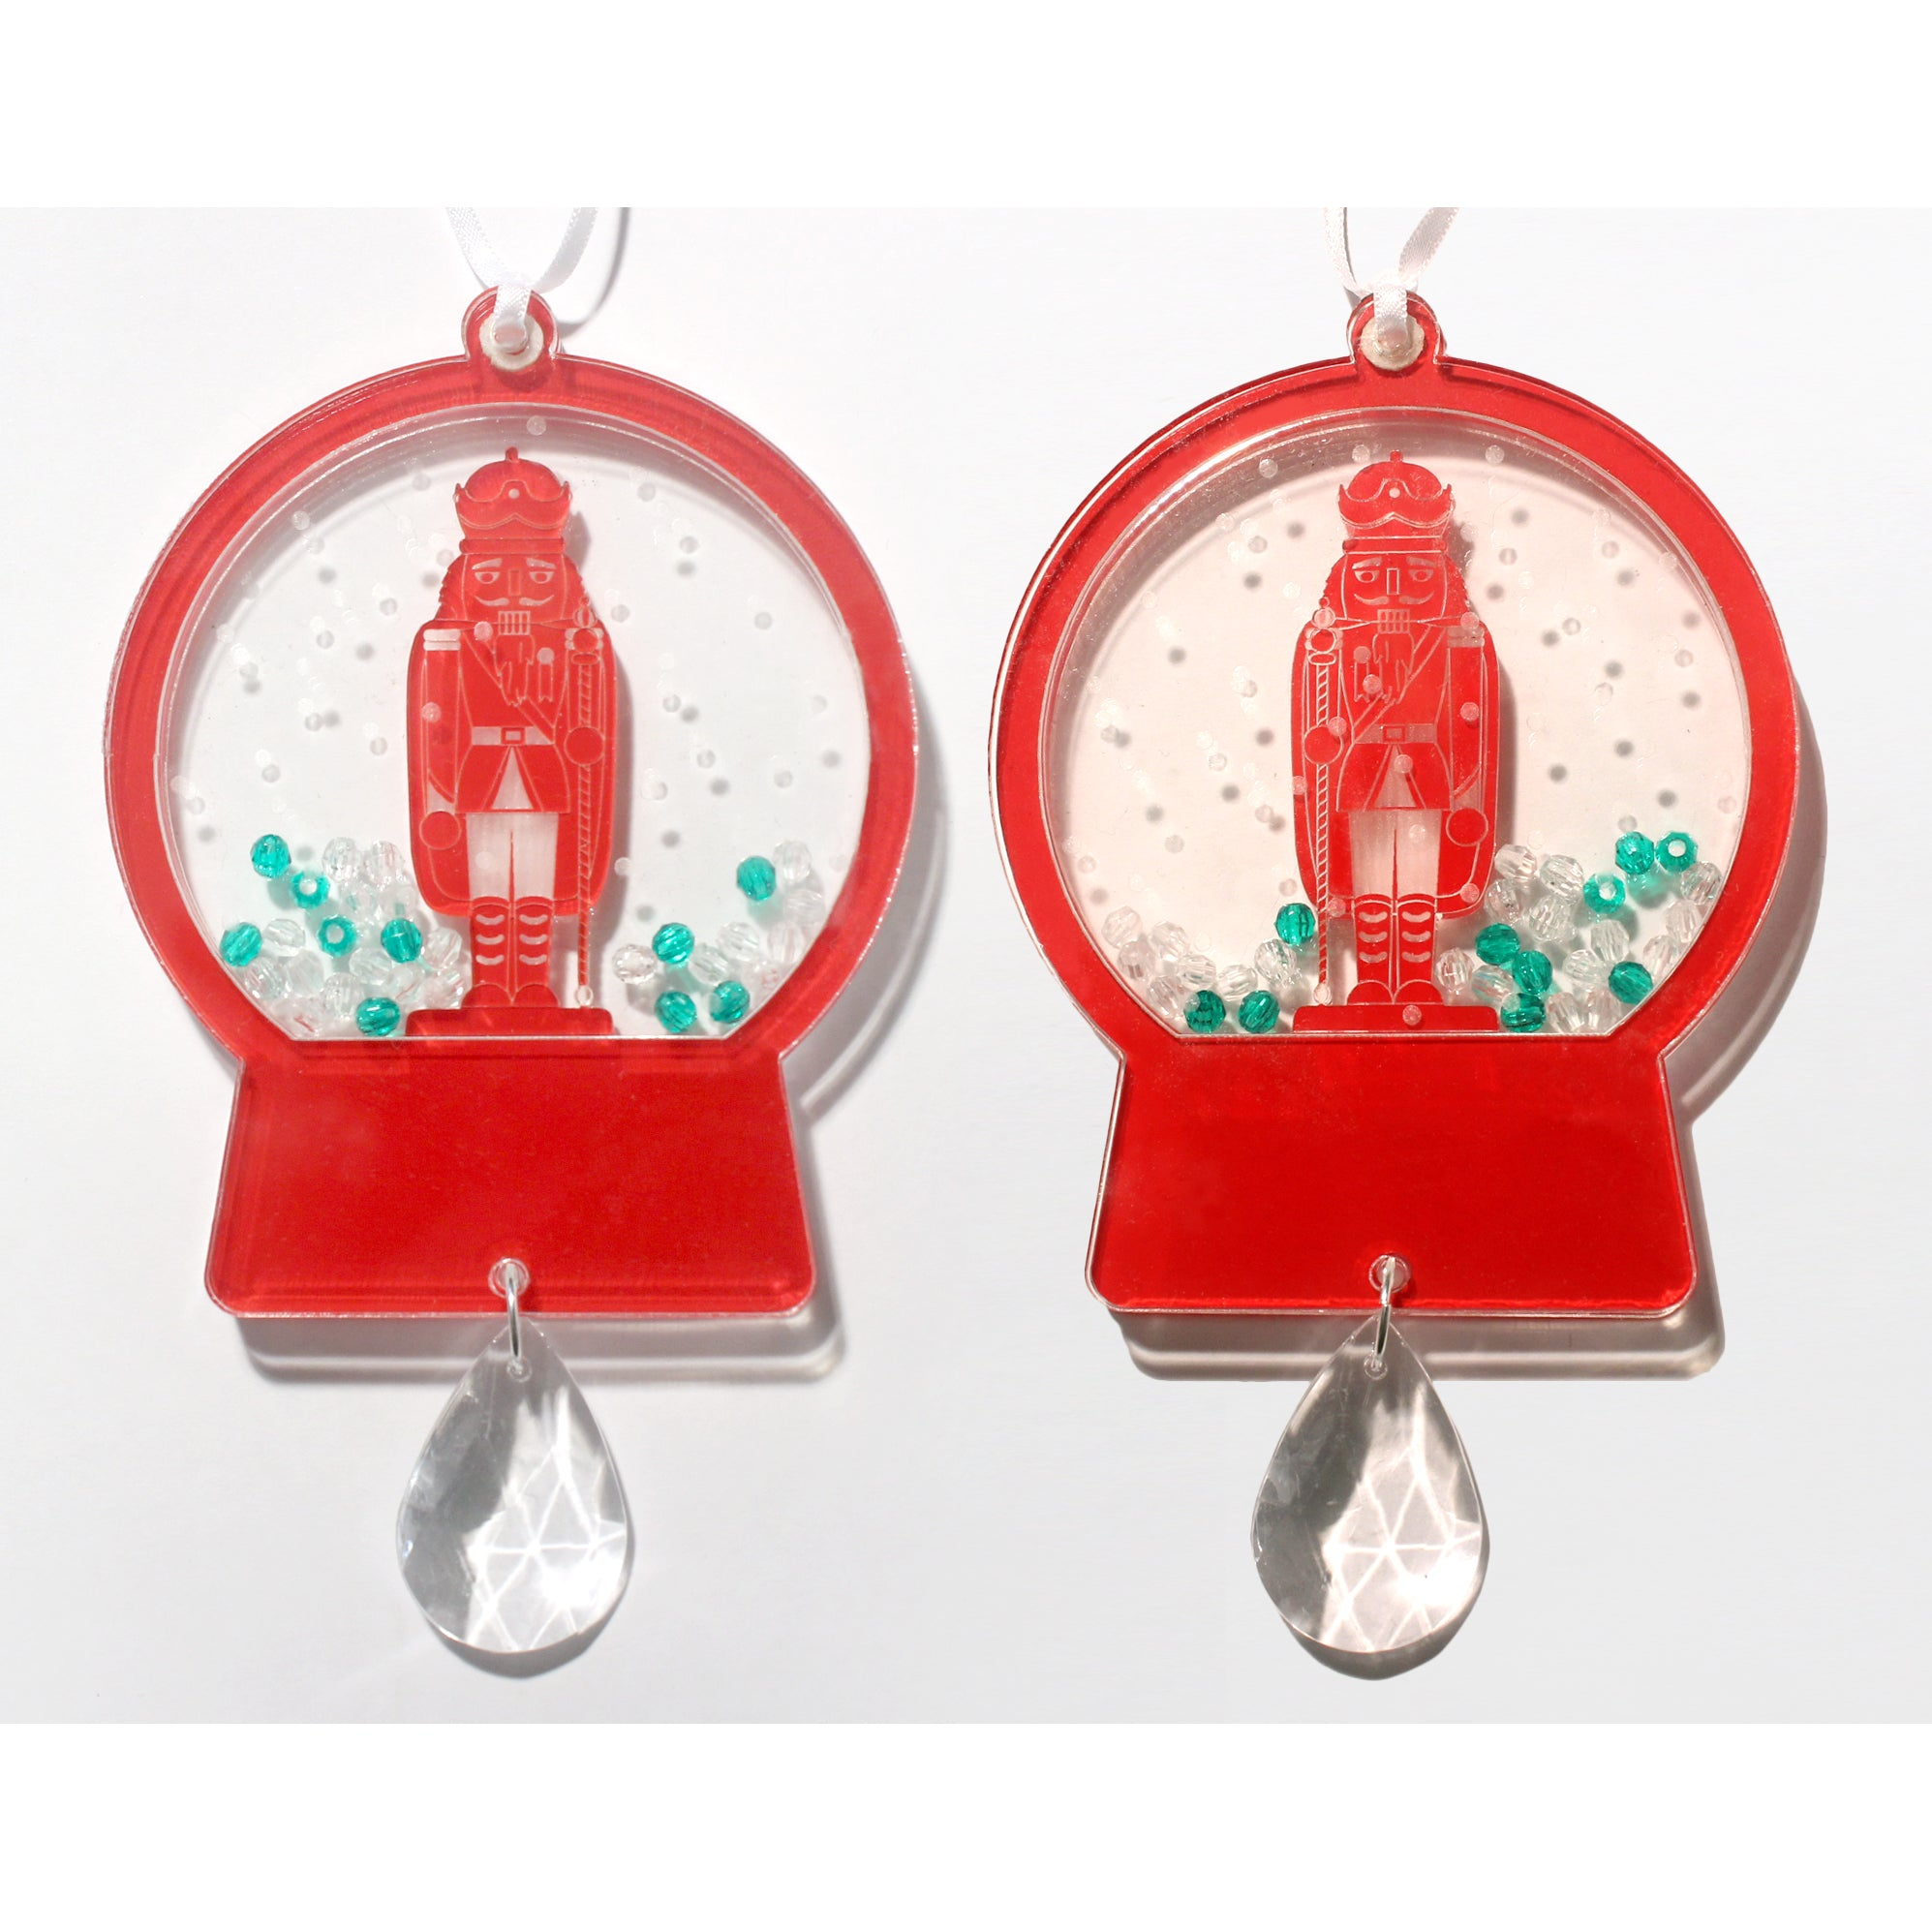 Nutcracker King Snow Globe Ornament